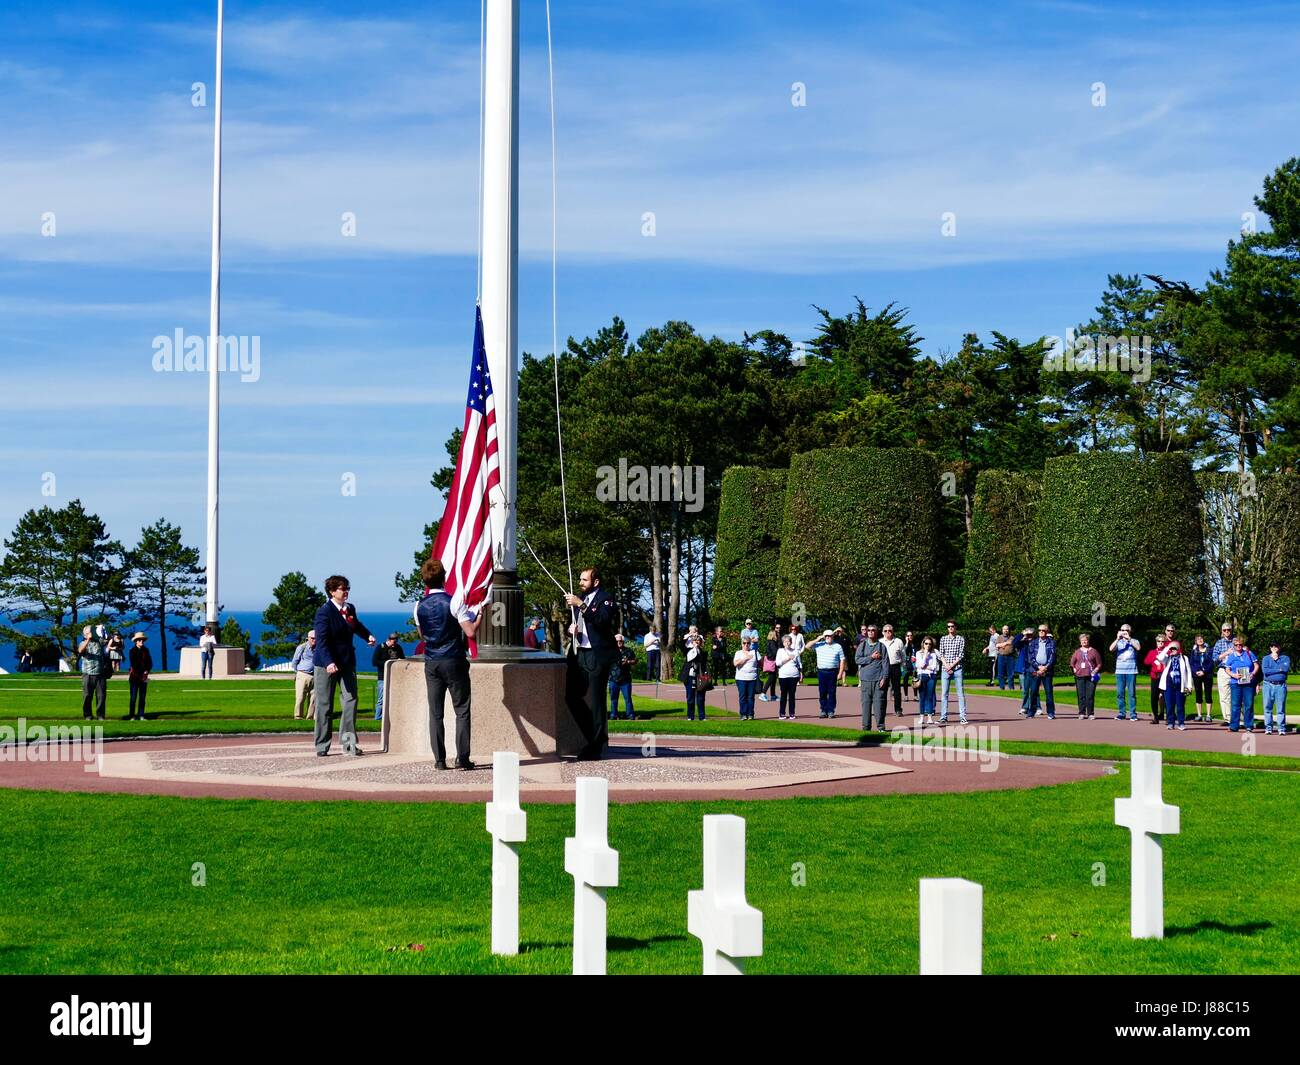 normandy-american-cemetery-and-memorial-